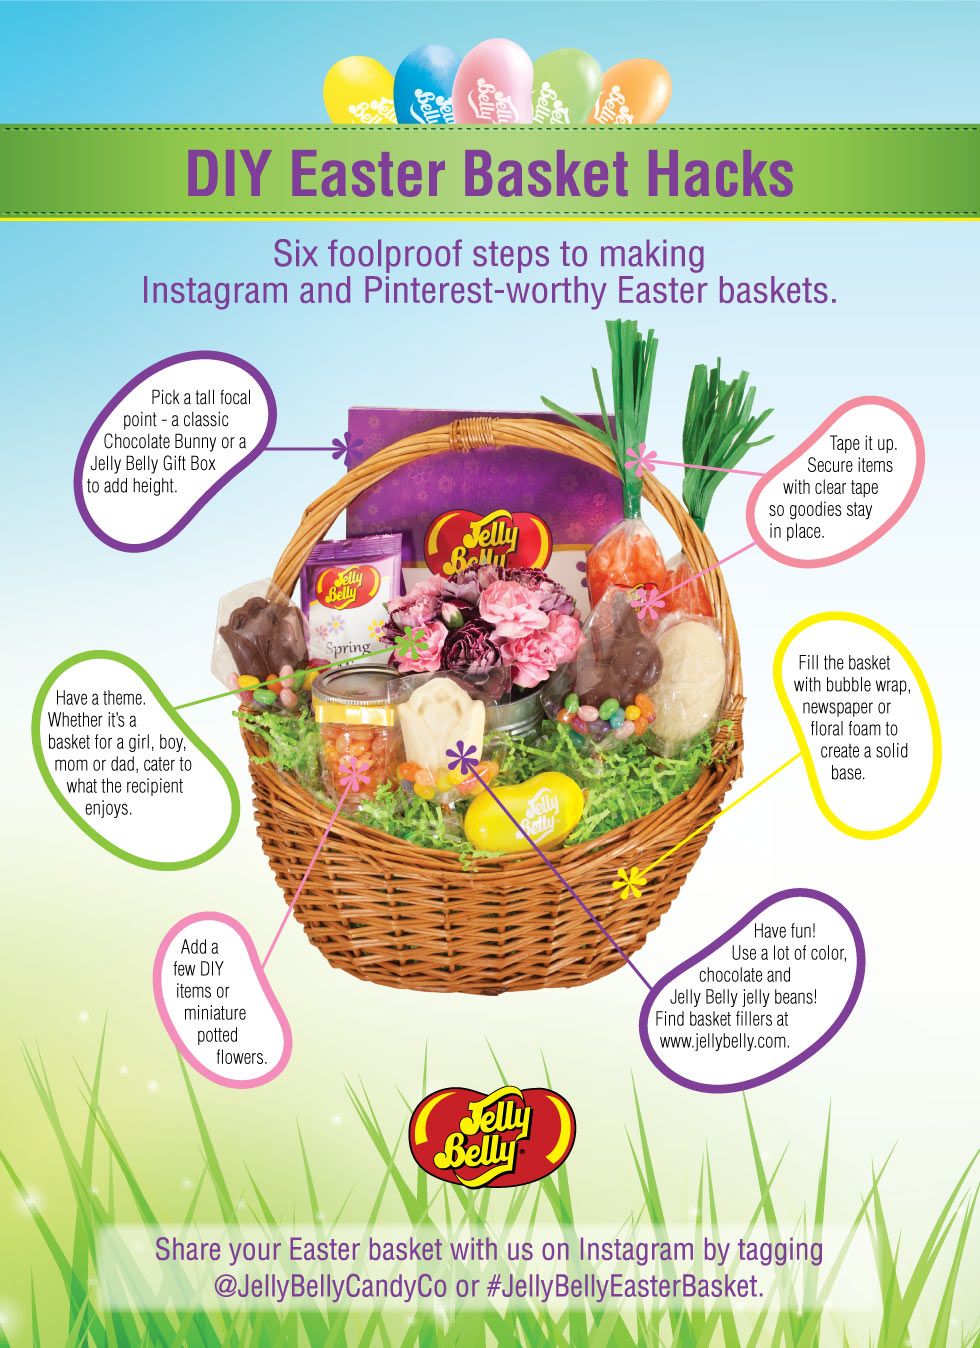 DIY Easter Basket Hacks